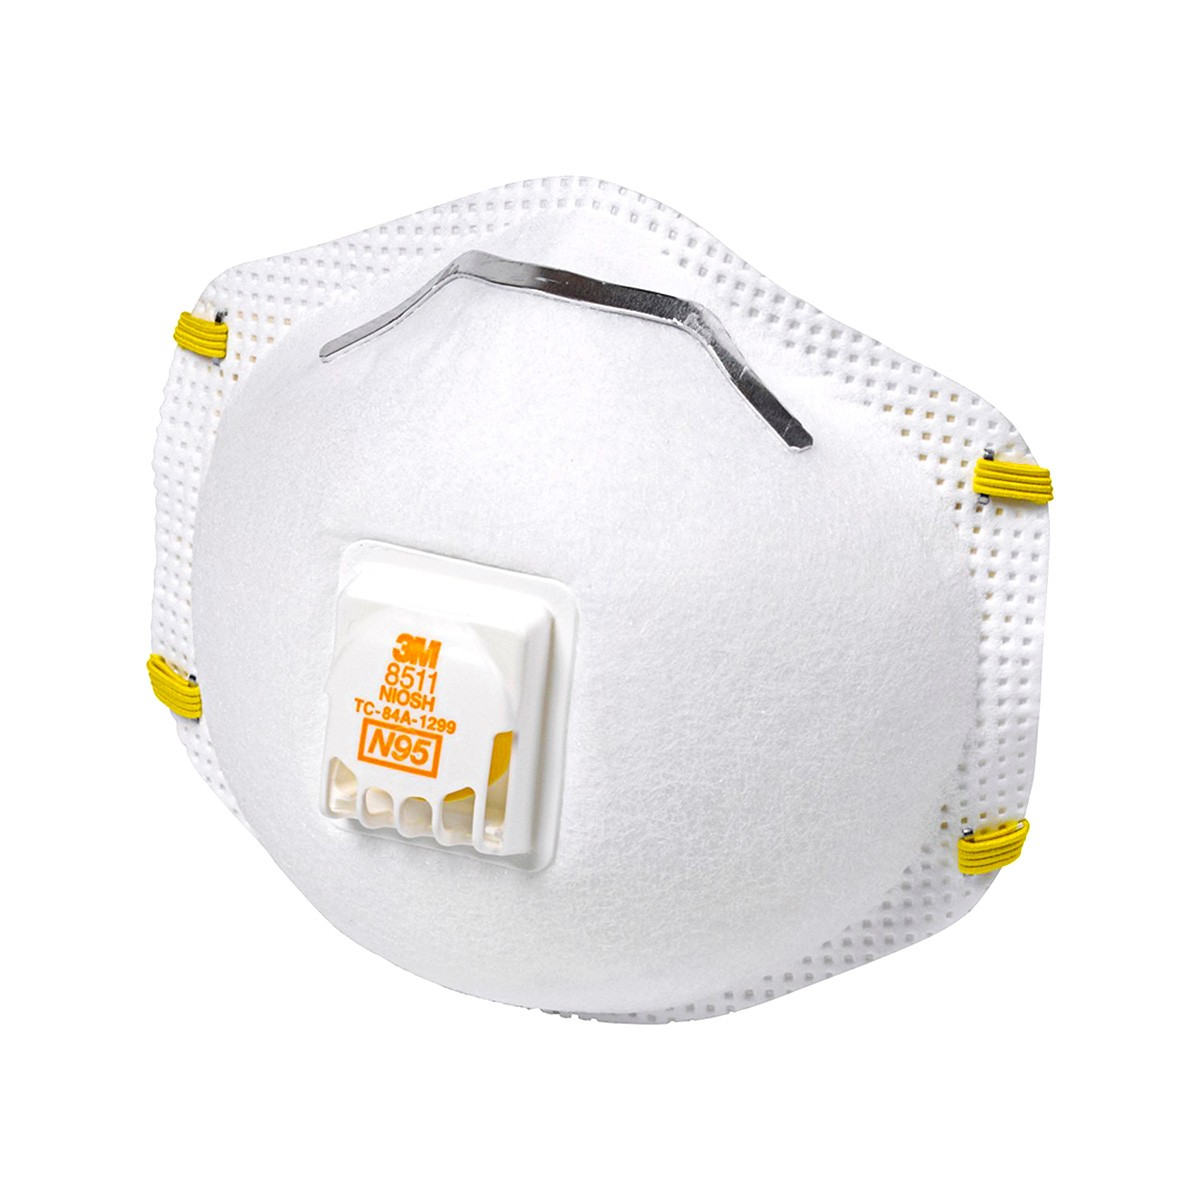 Of Particulate box 10 N95 3m™ 8511 Respirator